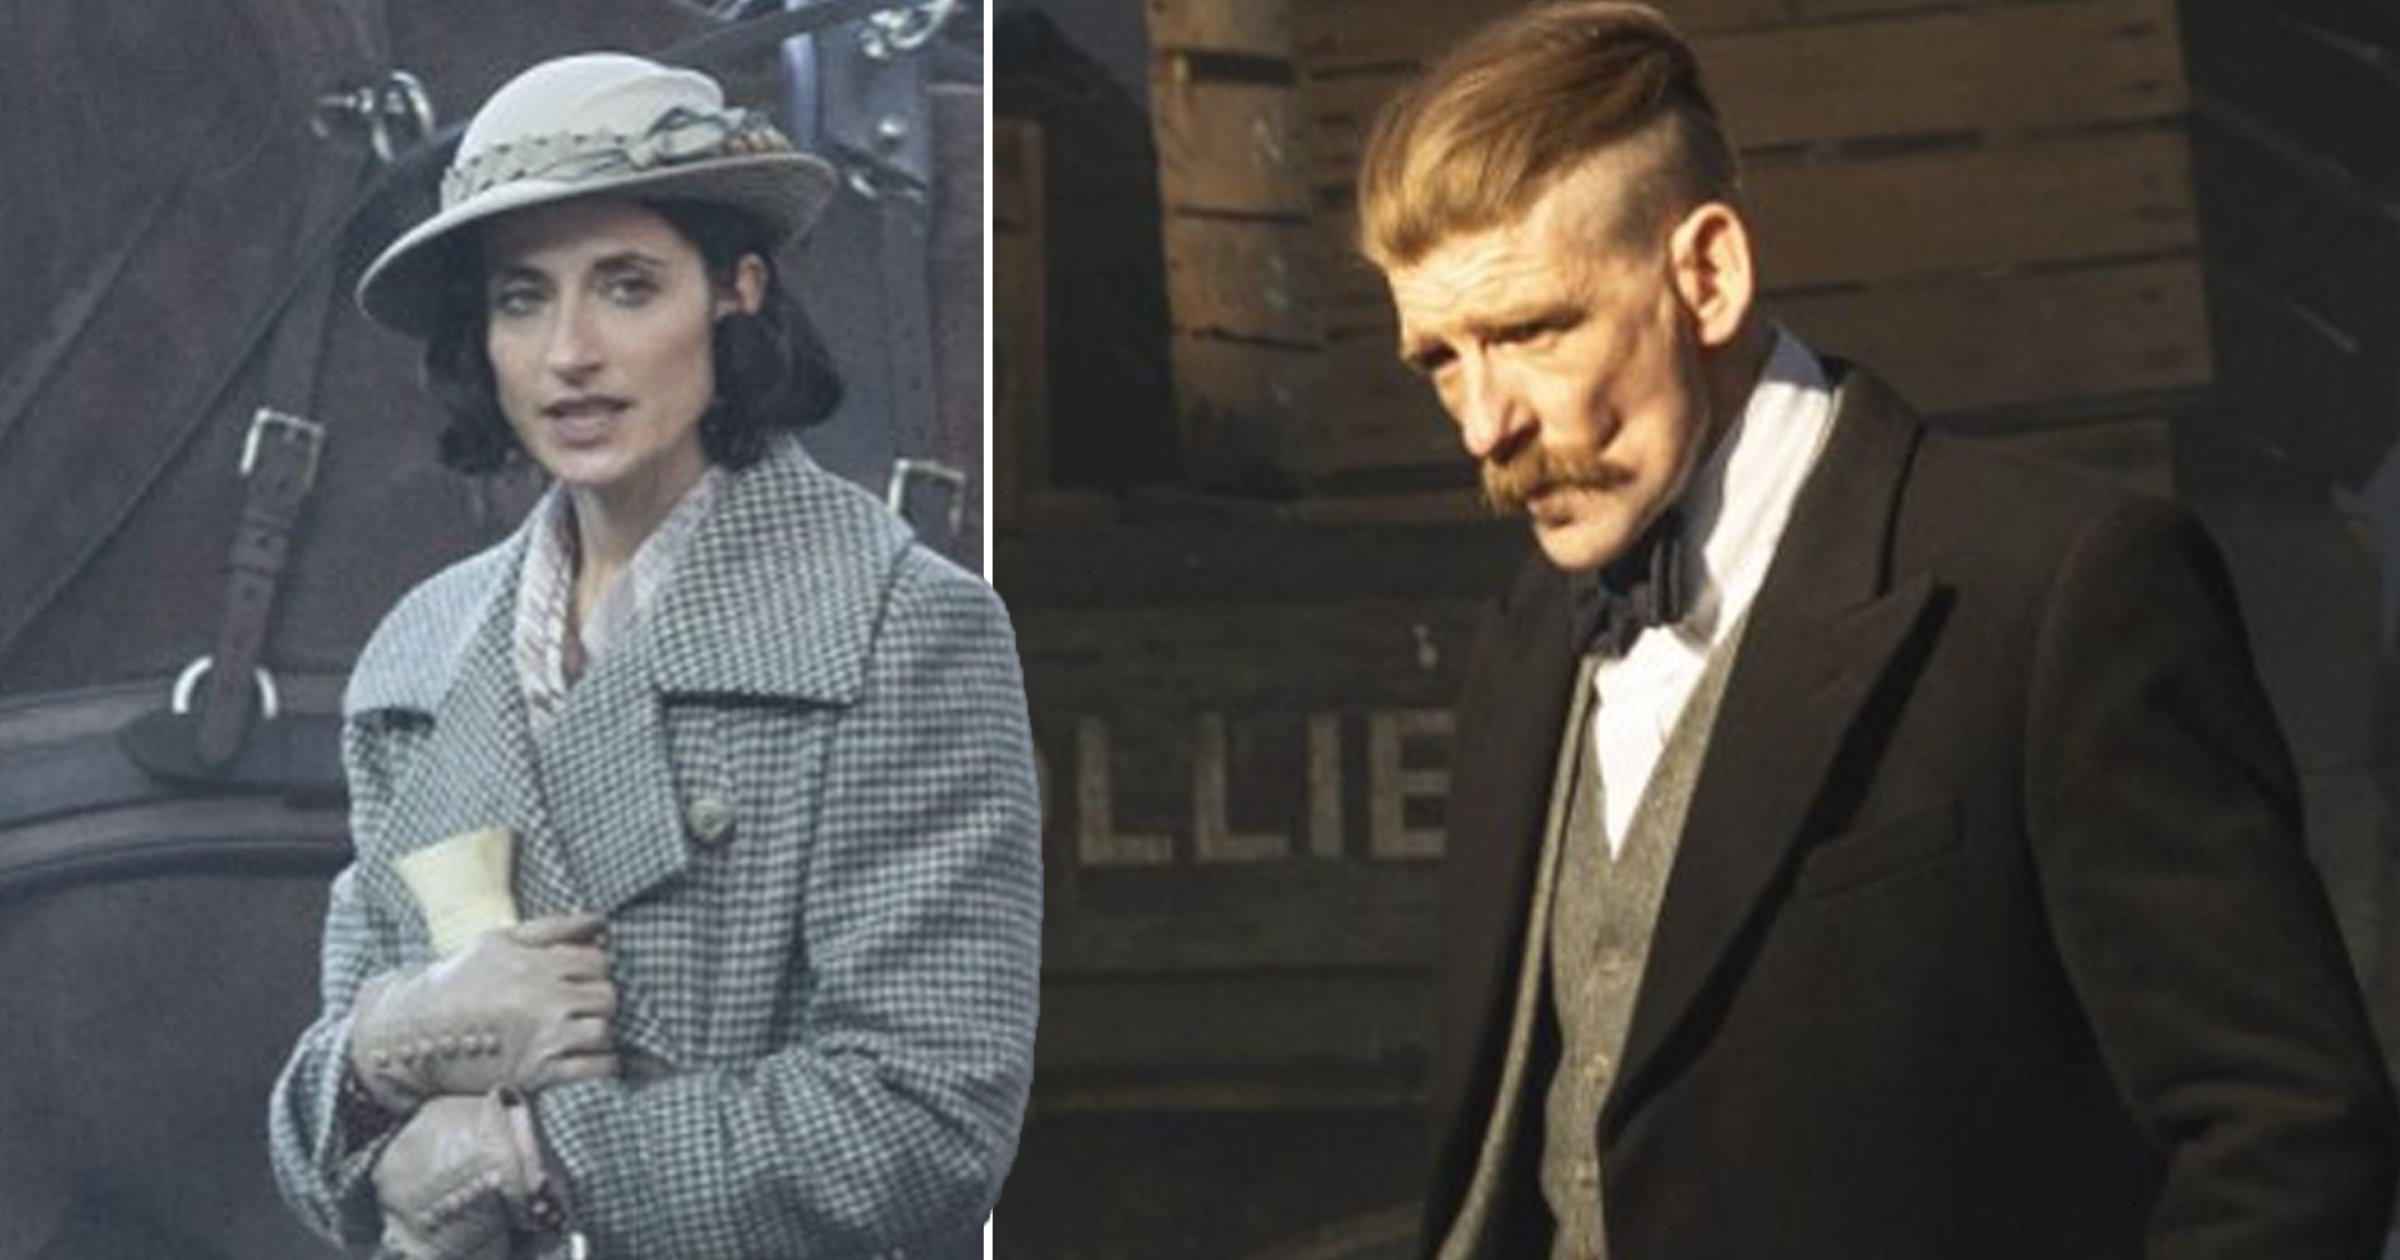 Peaky Blinders stars Paul Anderson and Natasha O'Keeffe spotted filming on the set of season 6